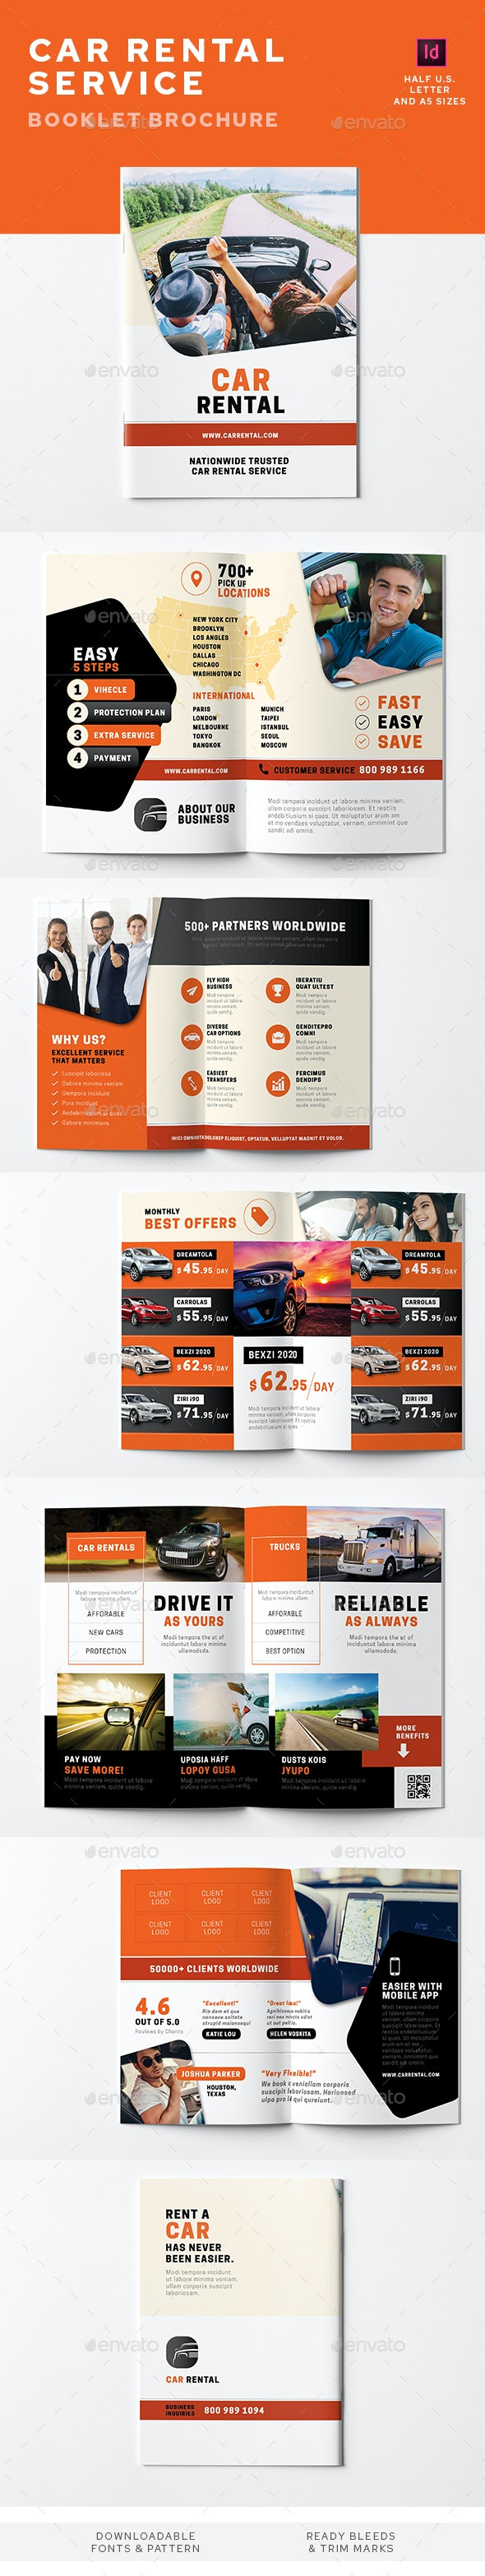 Car Rental Service Information Booklet - Informational Brochures